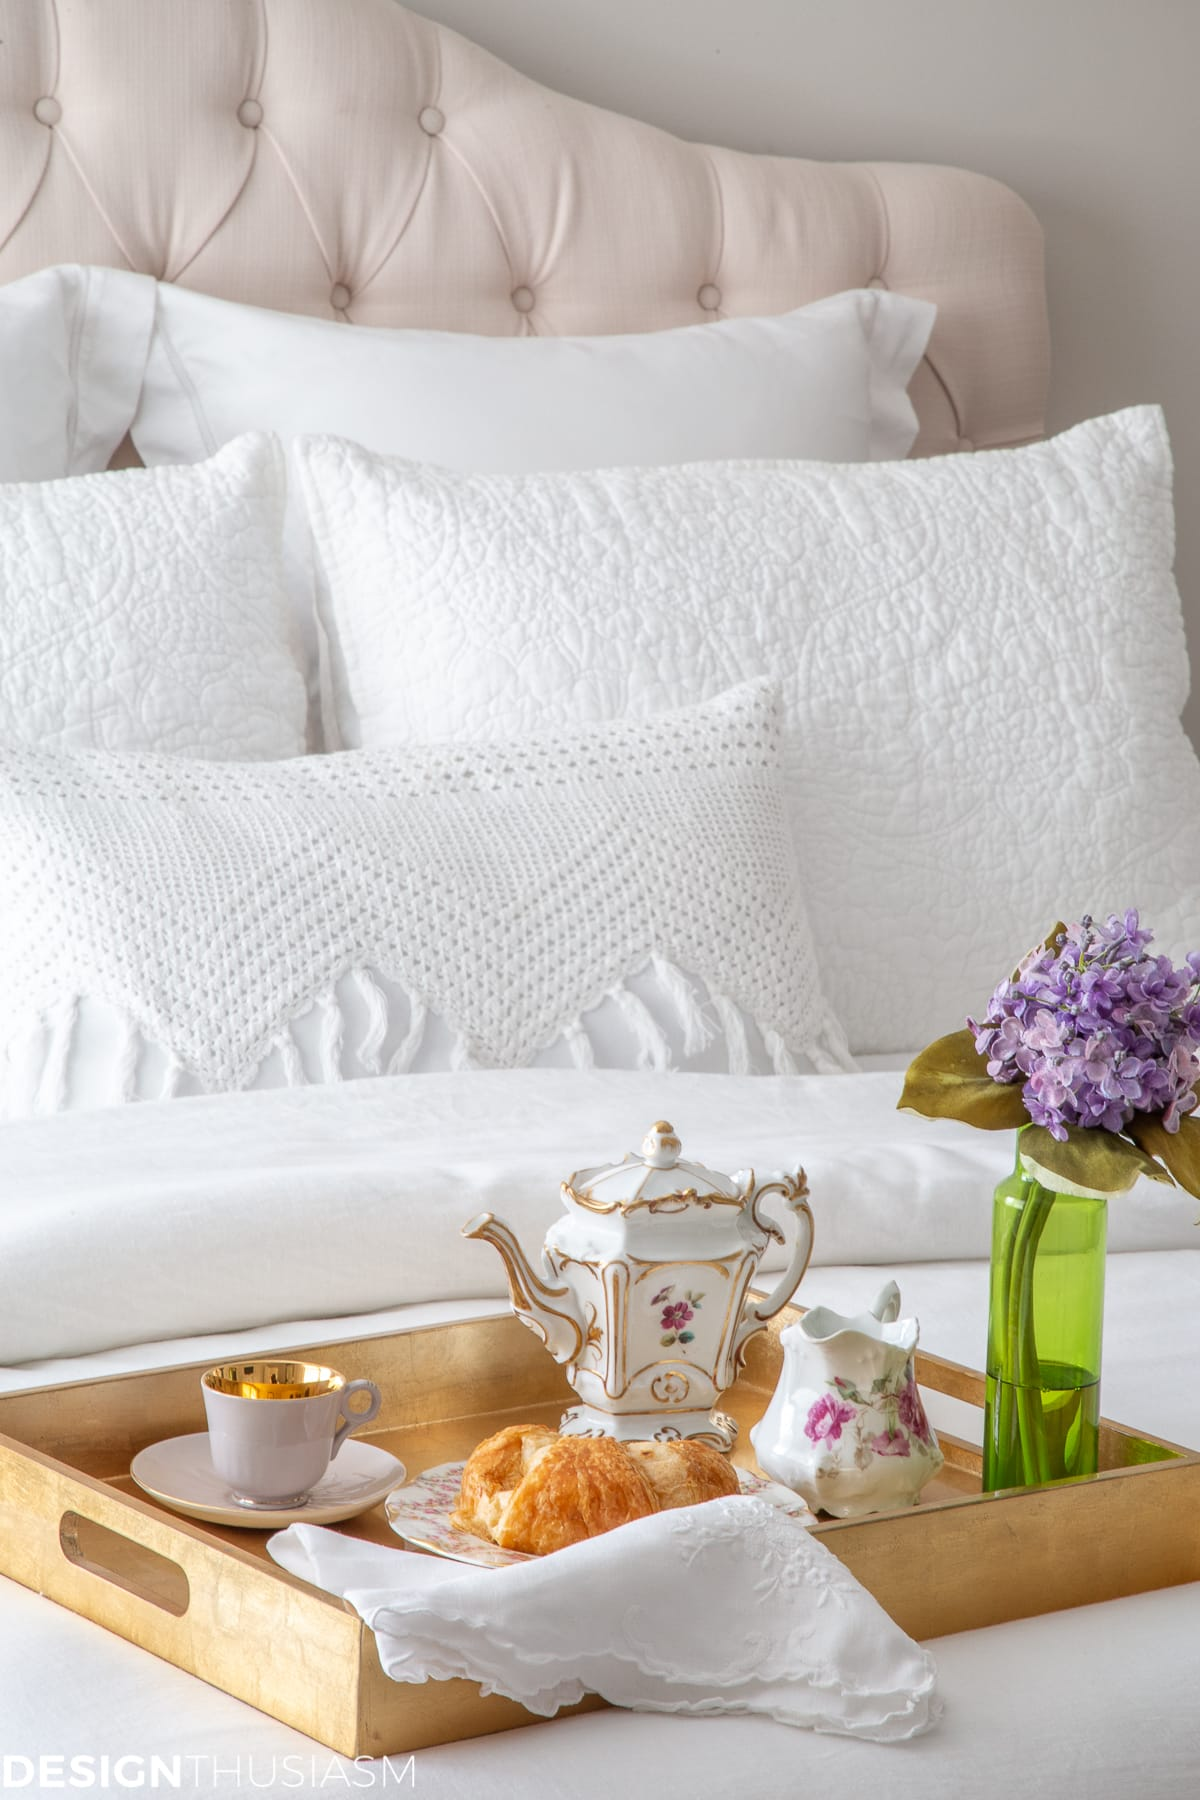 luxury white bedding with breakfast tray